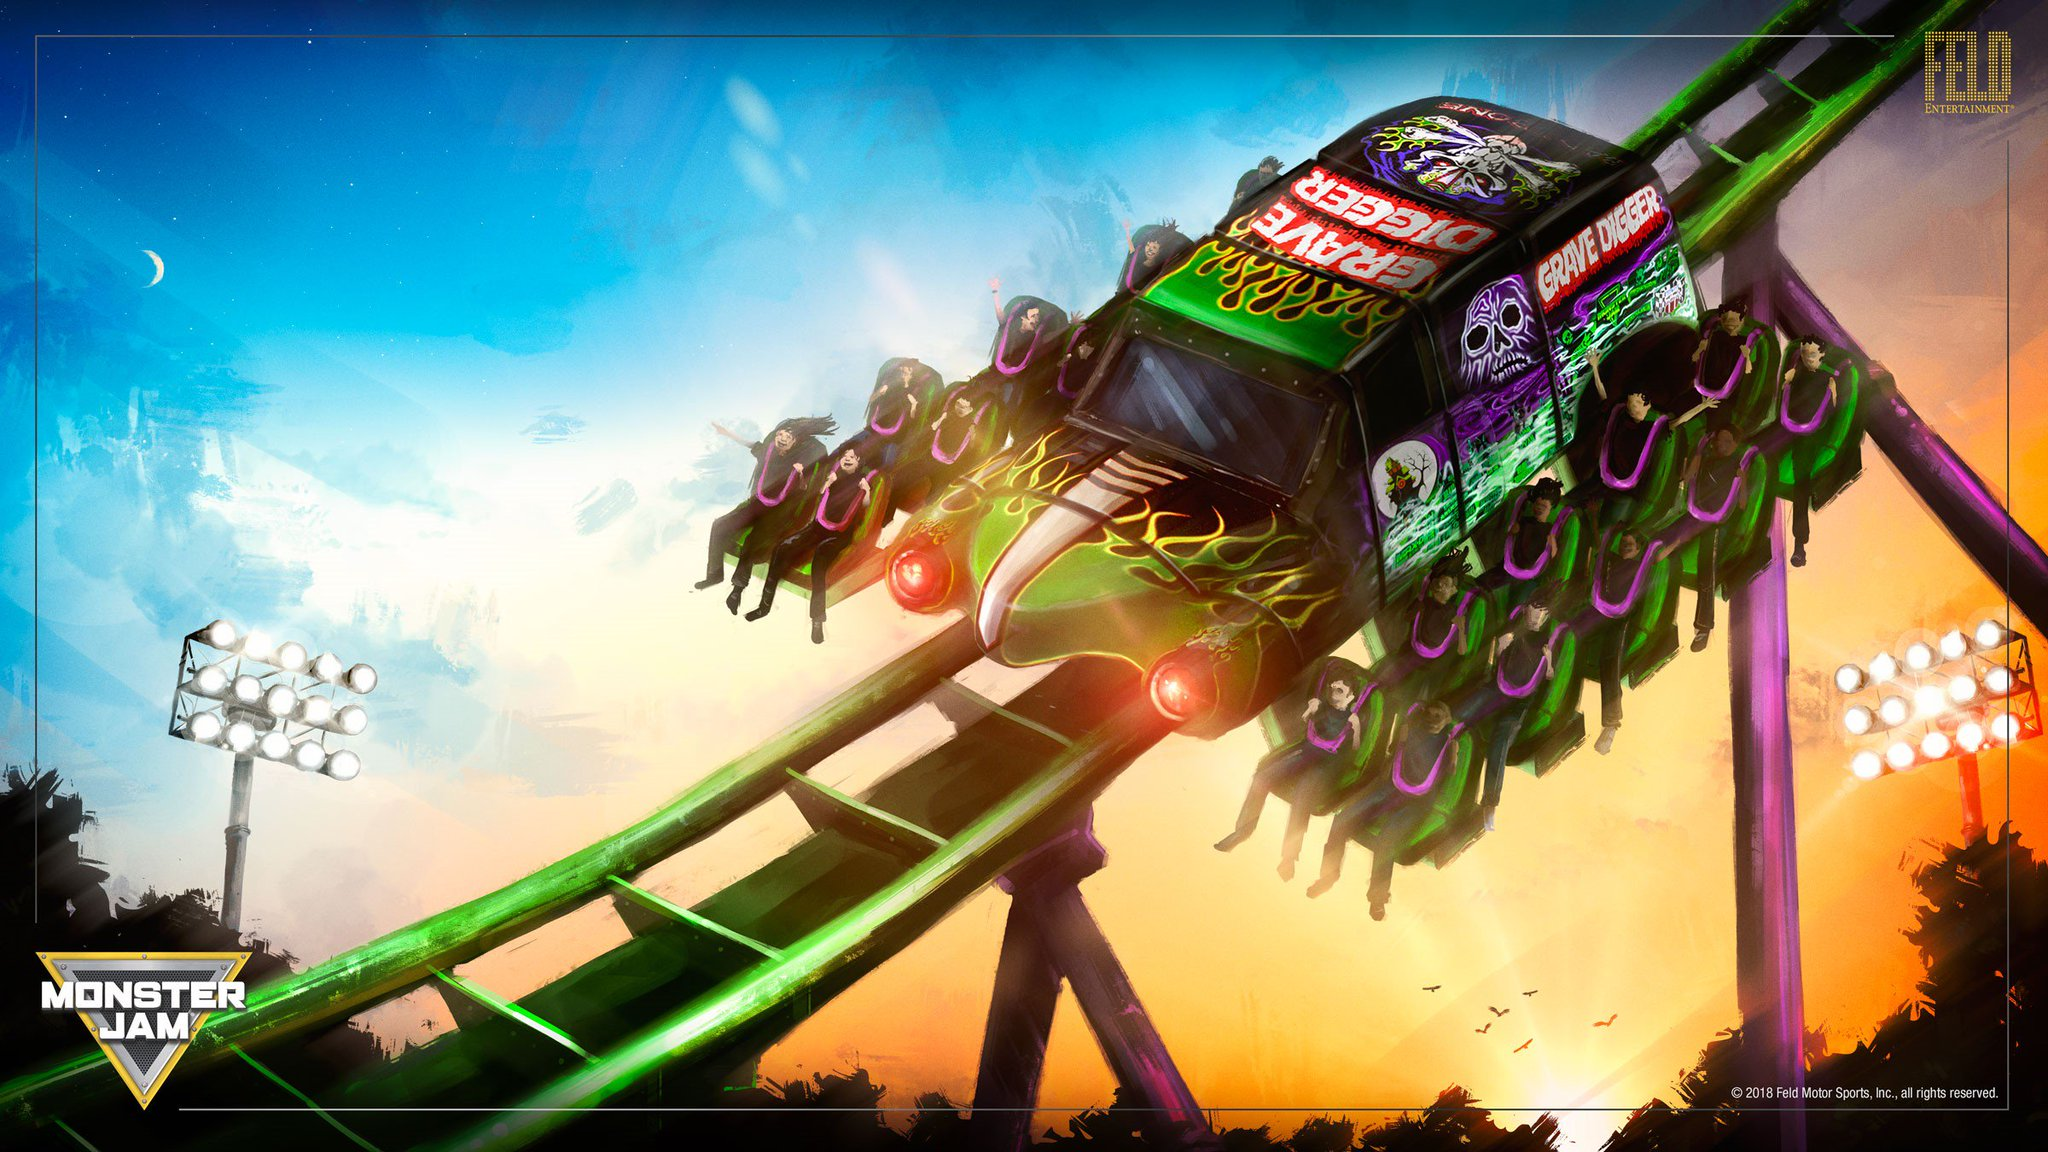 """Look at this Grave Digger Coaster Concept from @FeldEnt!  """"Grave Digger Freestyle Run will allow guests to experience backflips, corkscrews, saves & big air moments that the real Grave Digger drivers experience in their 12,000 lb Monster Jam trucks during Freestyle competitions."""" https://t.co/sFpDaOqbPM"""